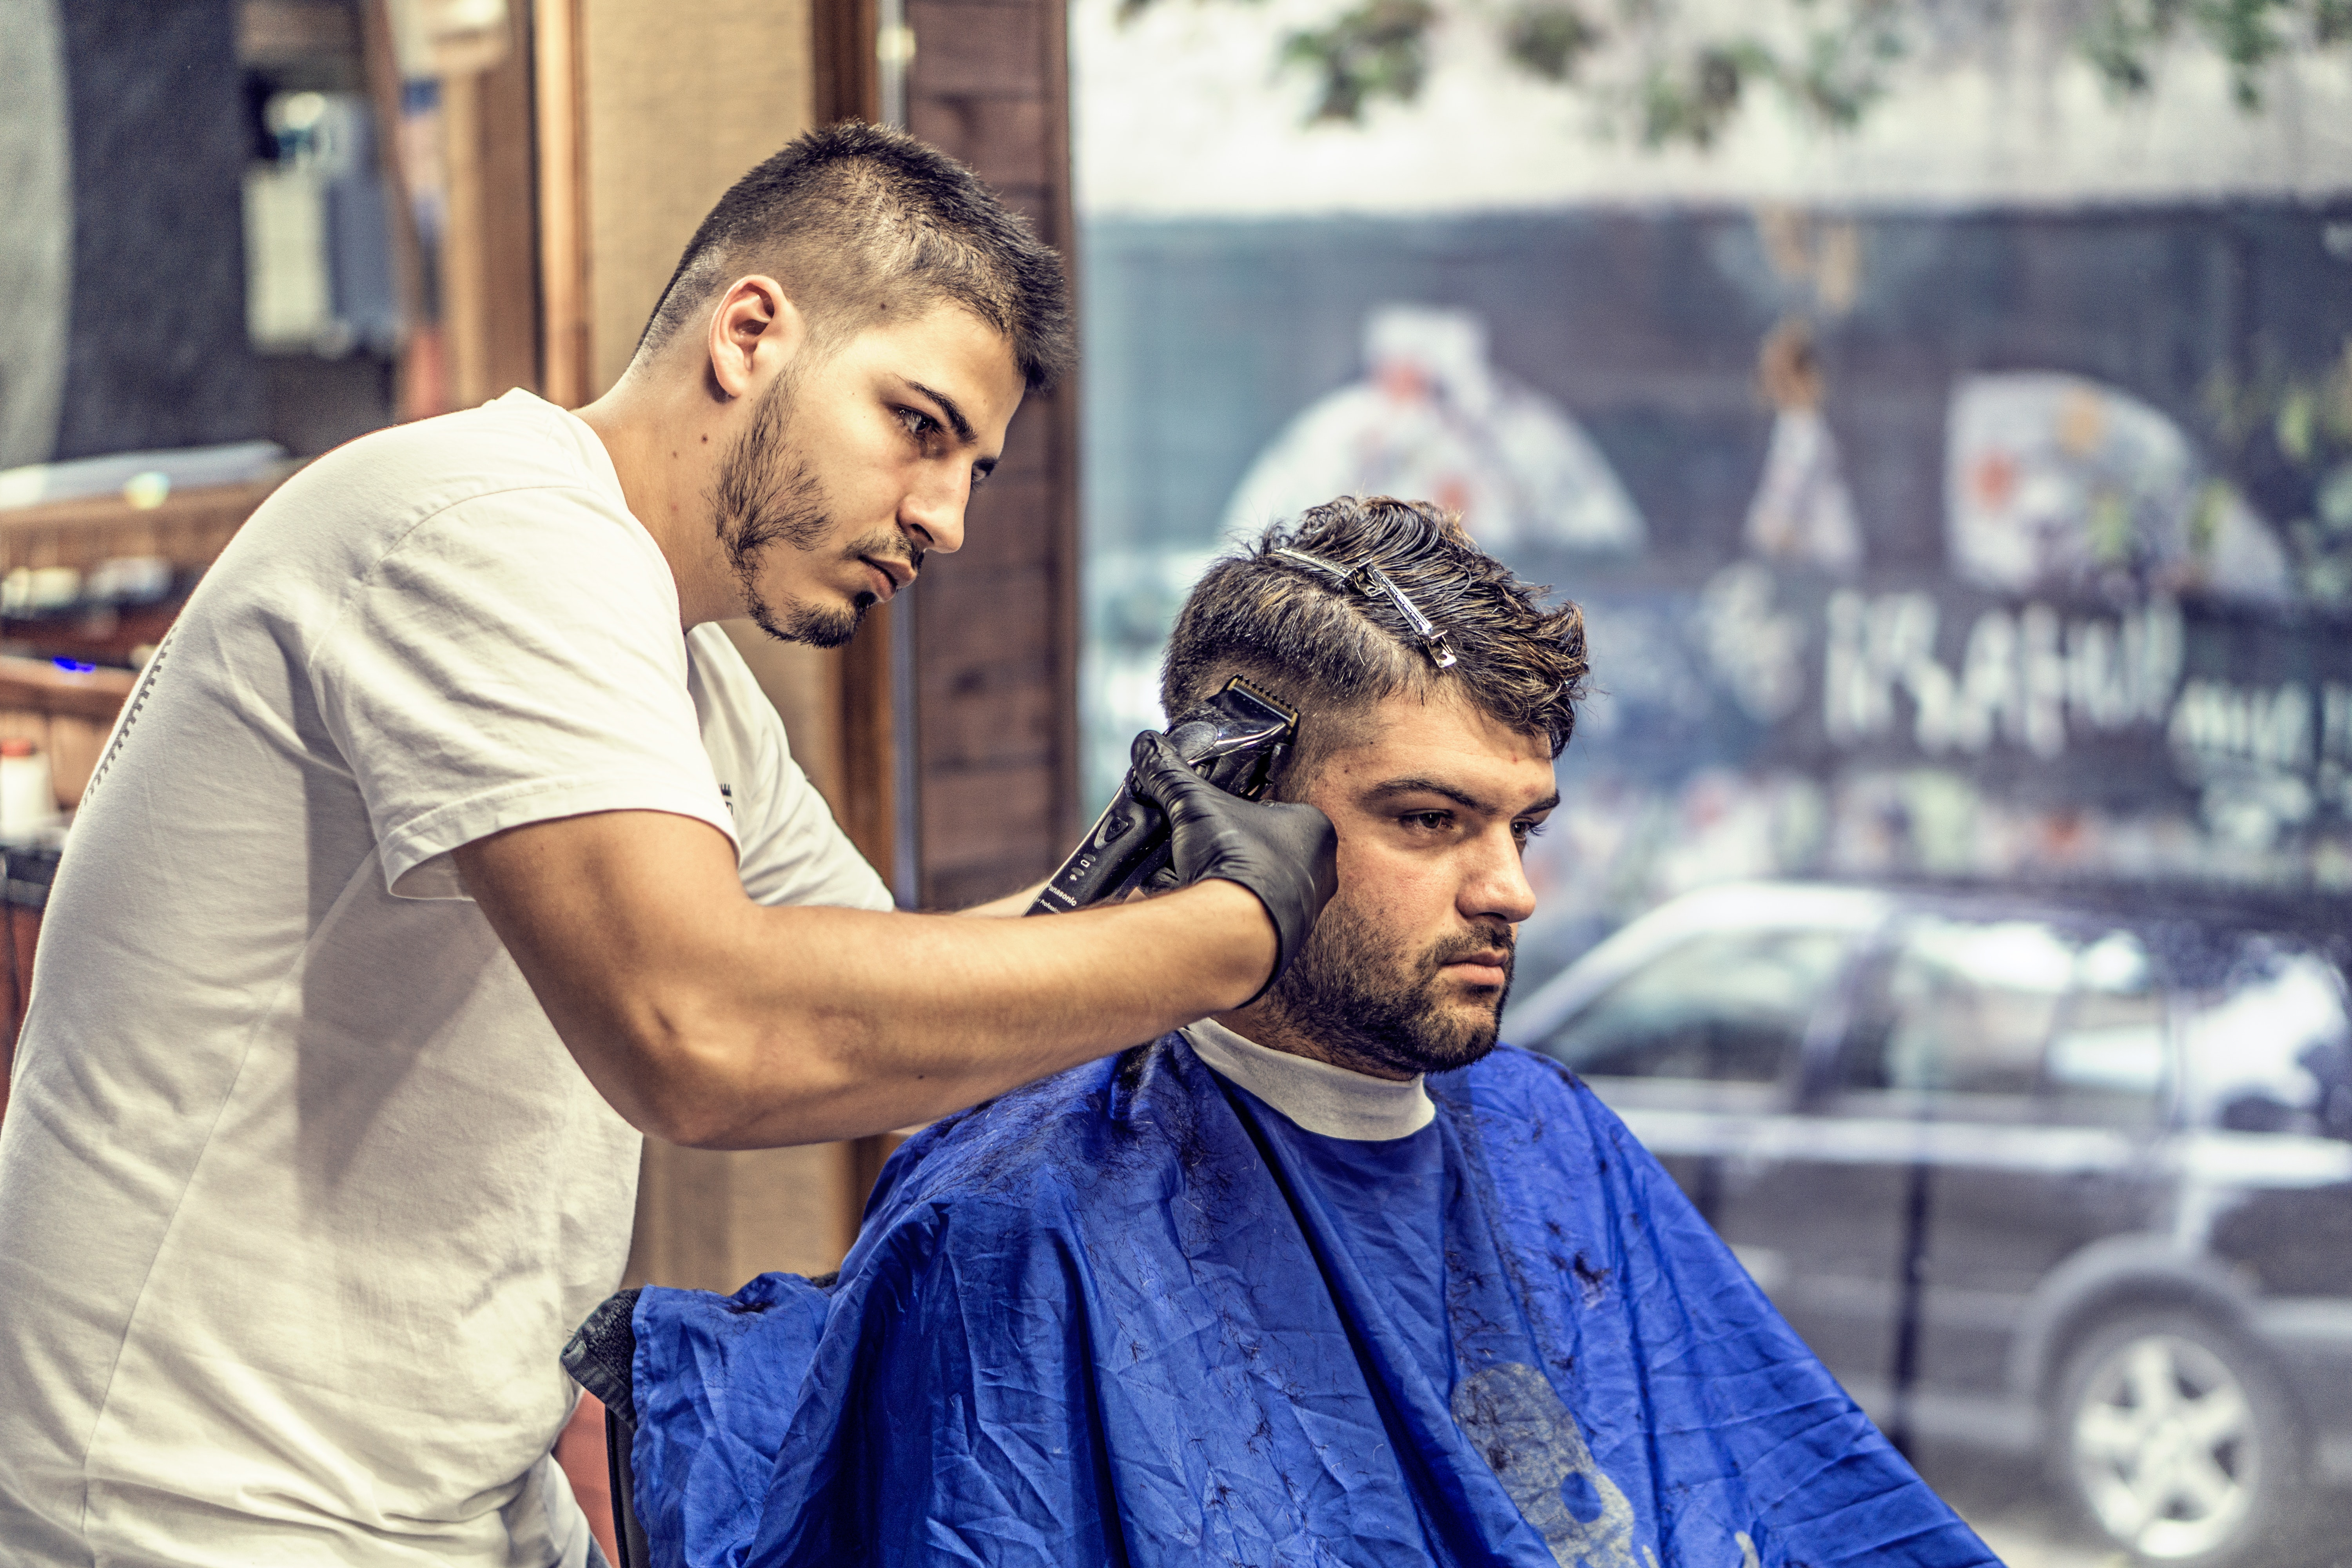 Barber in White Shirt Trimming Man's Hair in Blue Textile While Sitting Nearby Glass Window, People, Stylish, Men, Hairdresser, HQ Photo